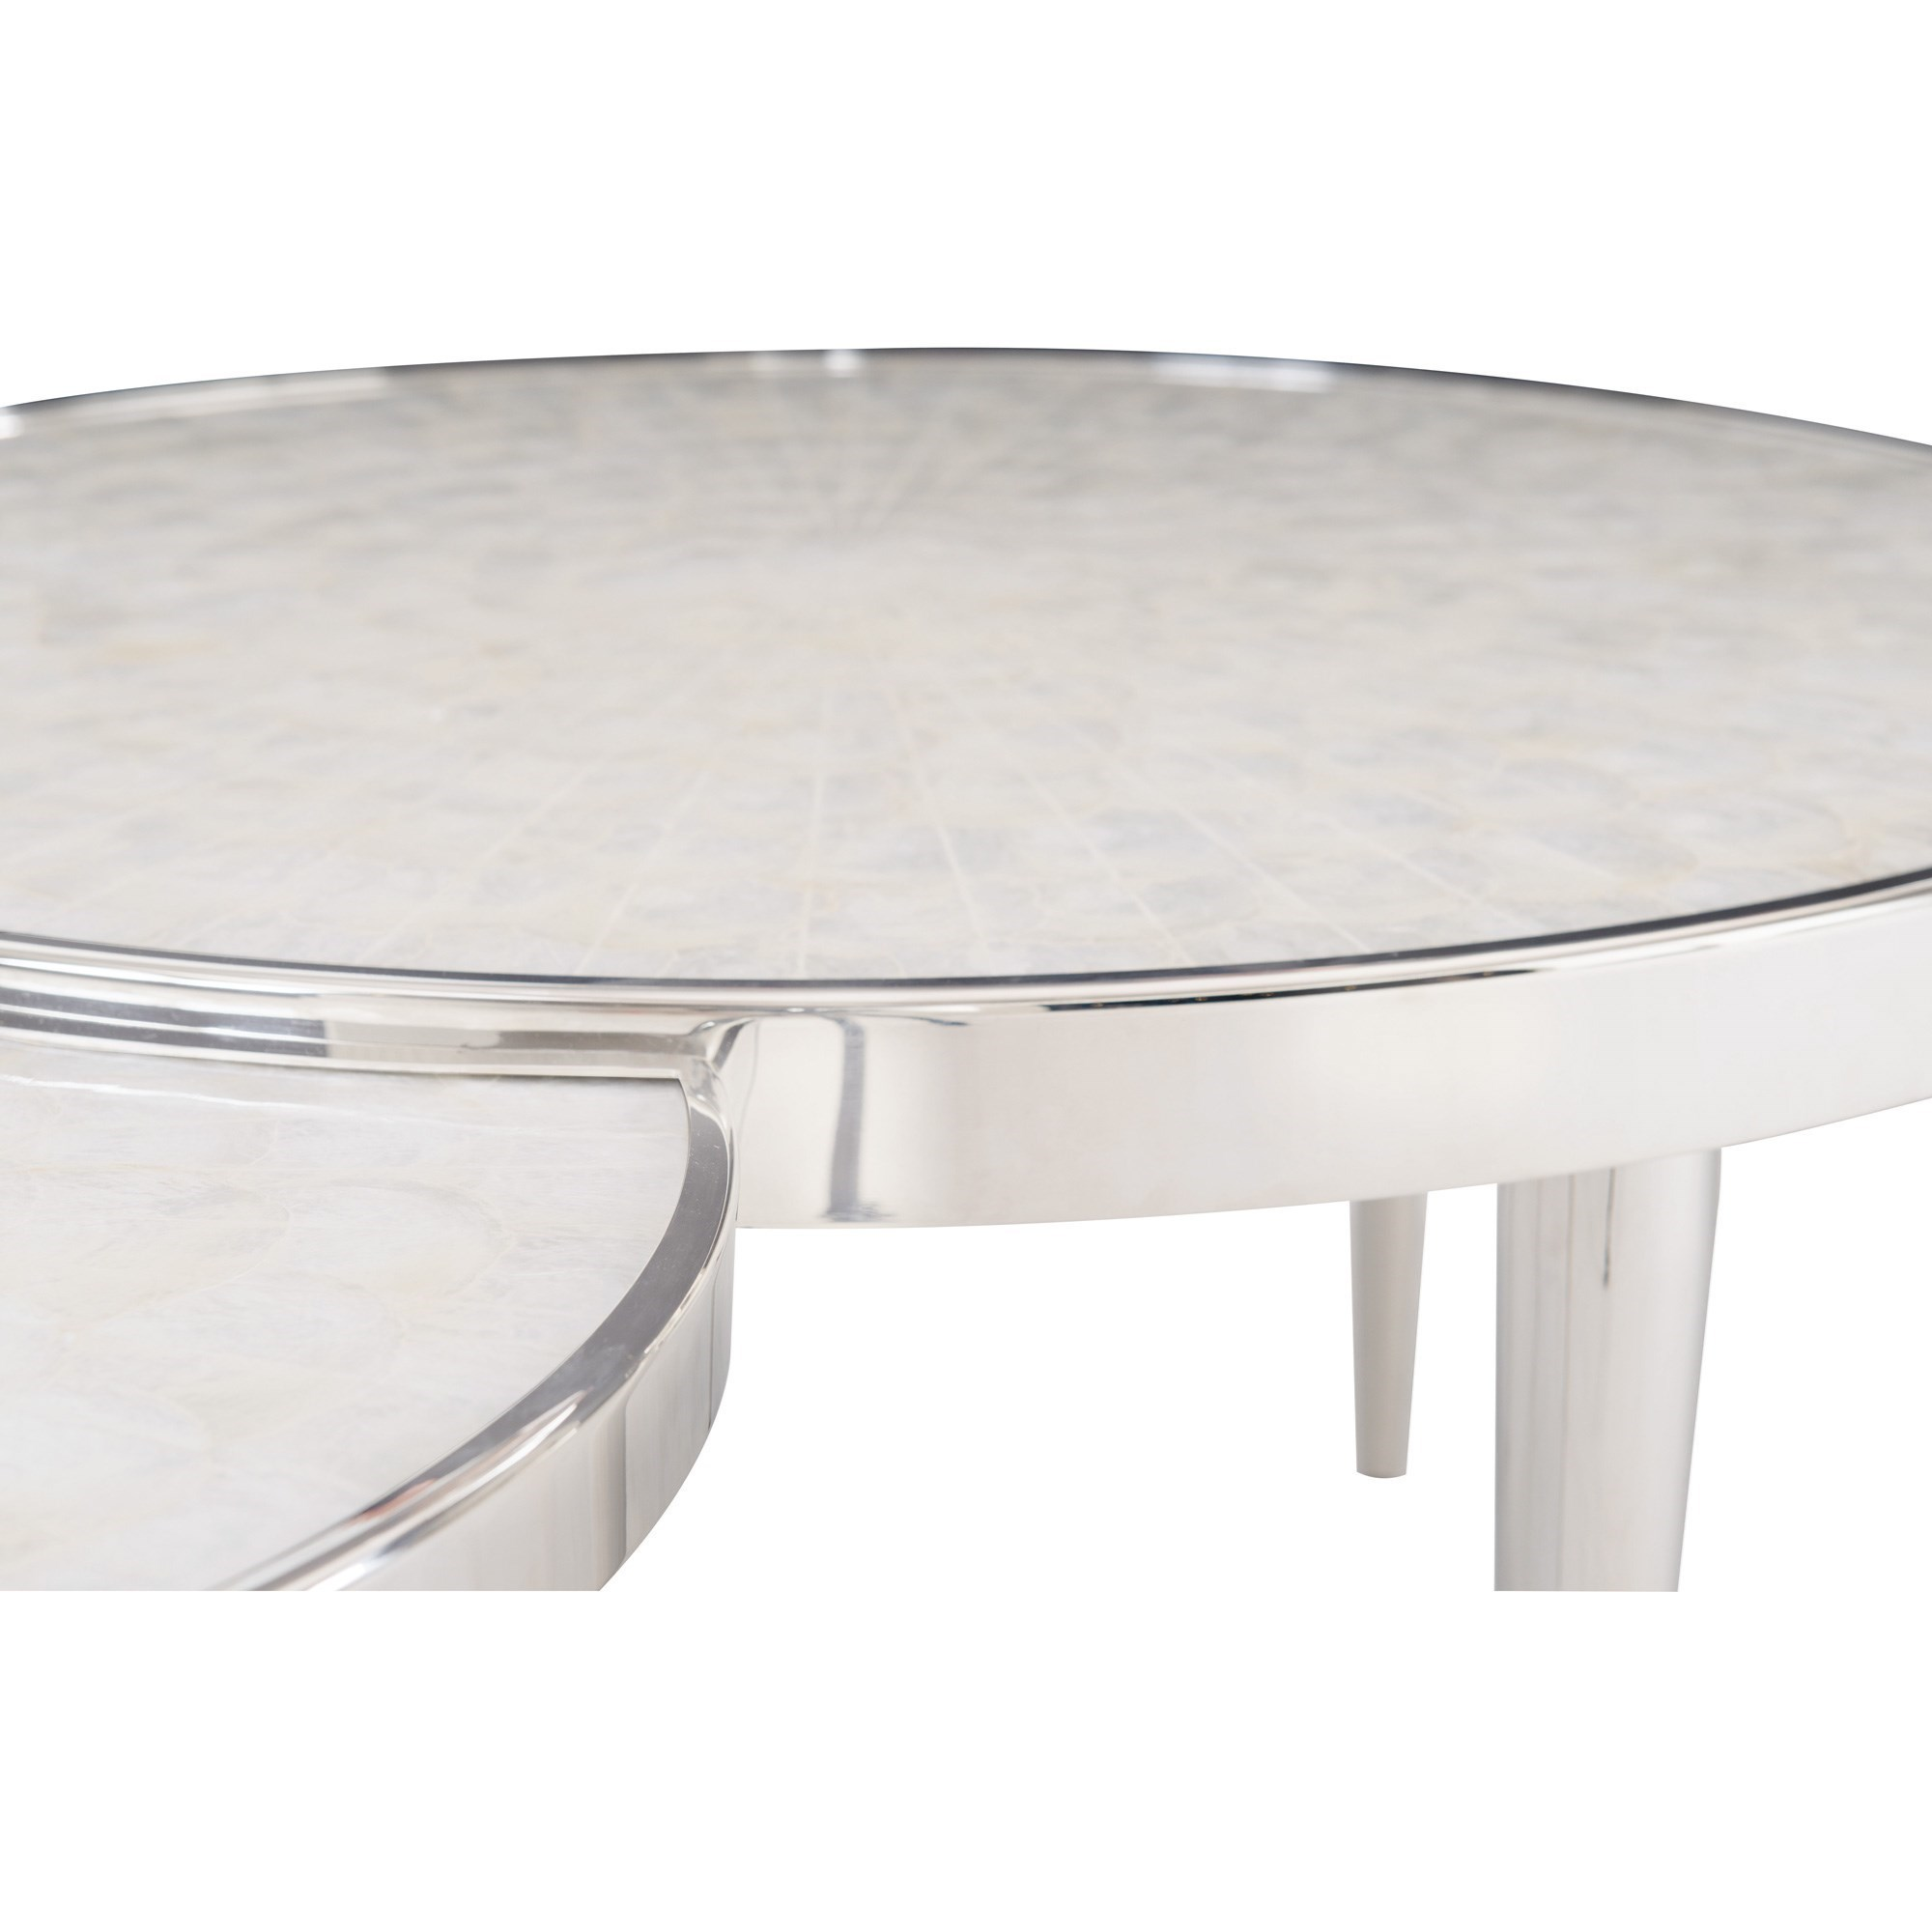 interiors ornette stainless steel cocktail table